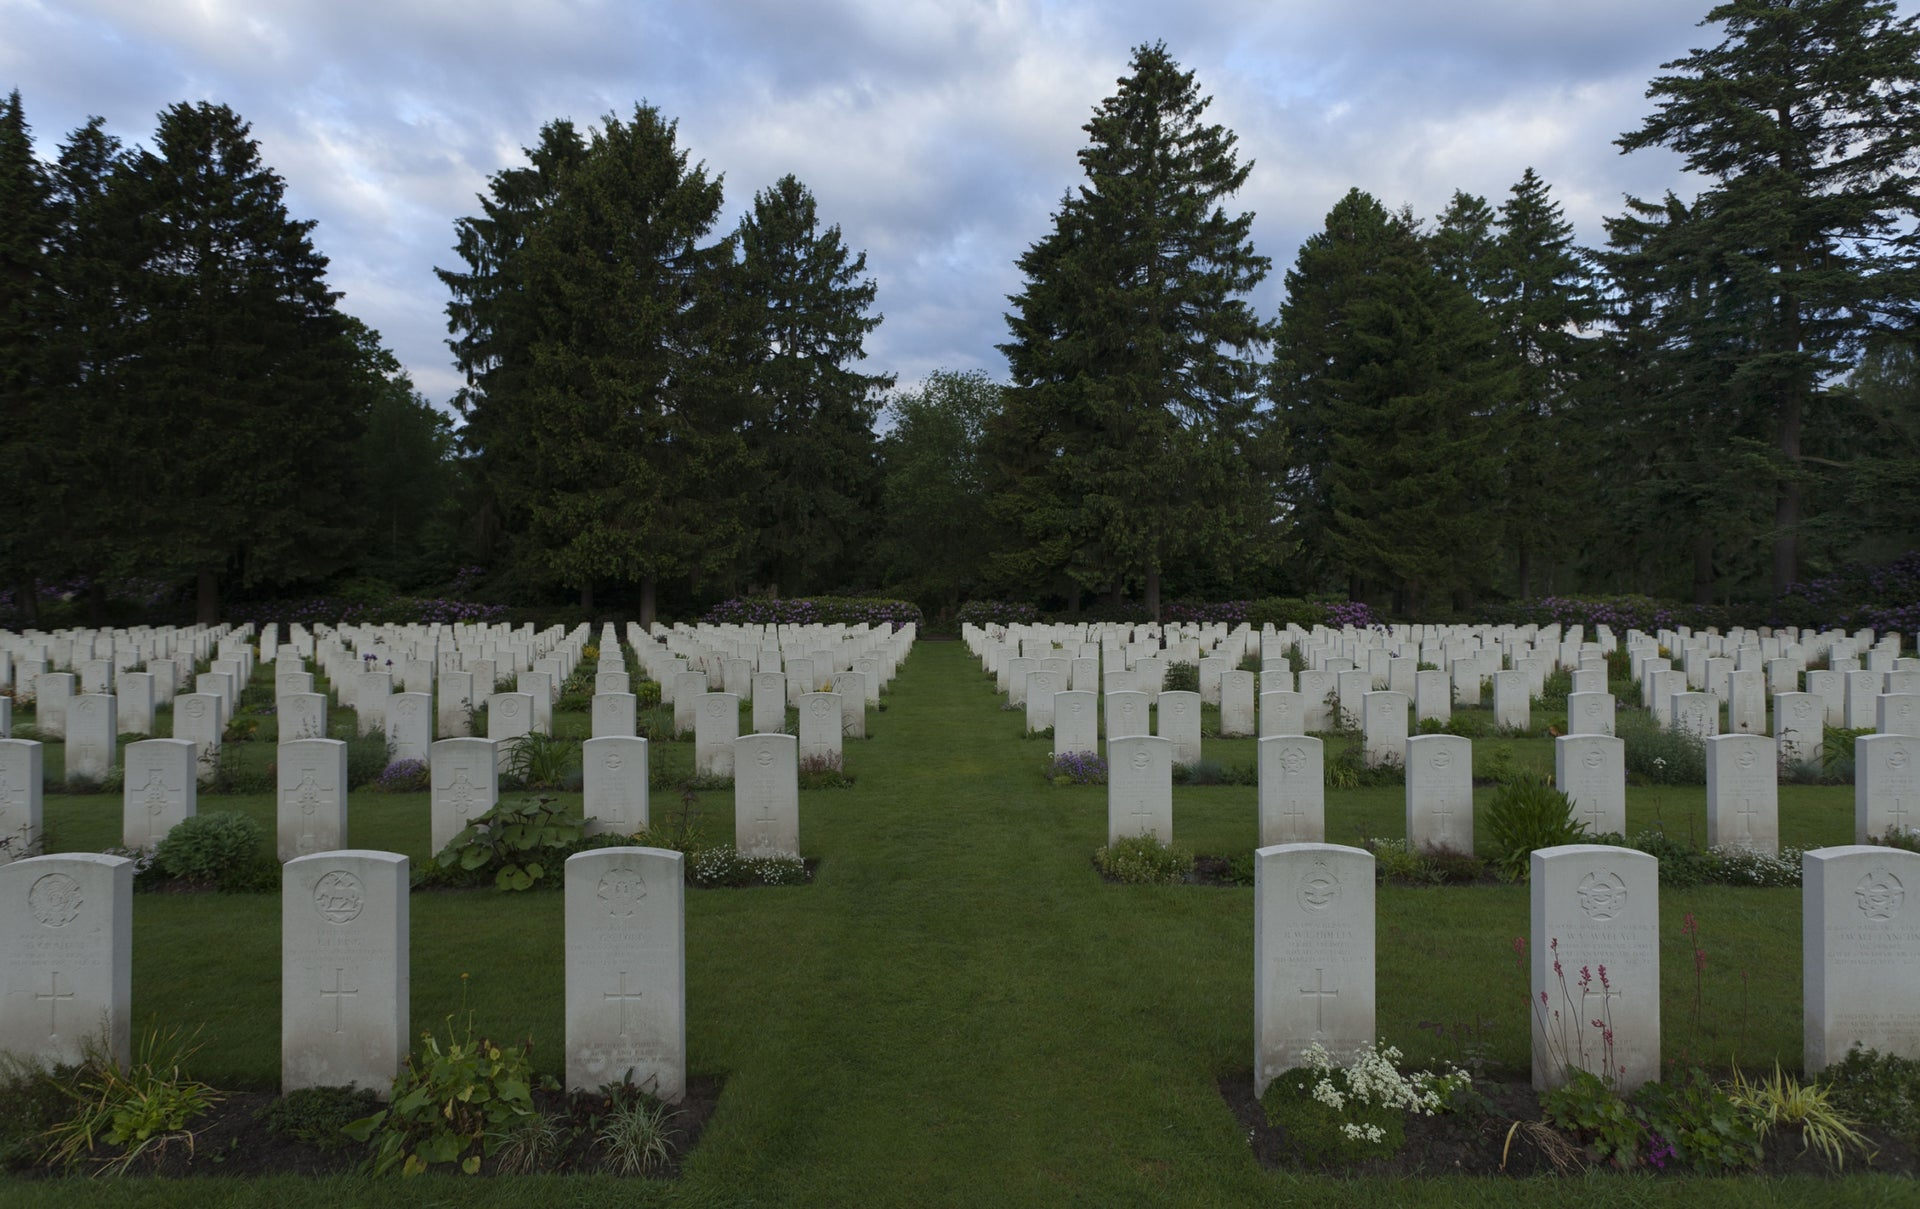 A British military cemetery in Hamburg. The dead have no needs. They don't eat food and they don't drive cars.